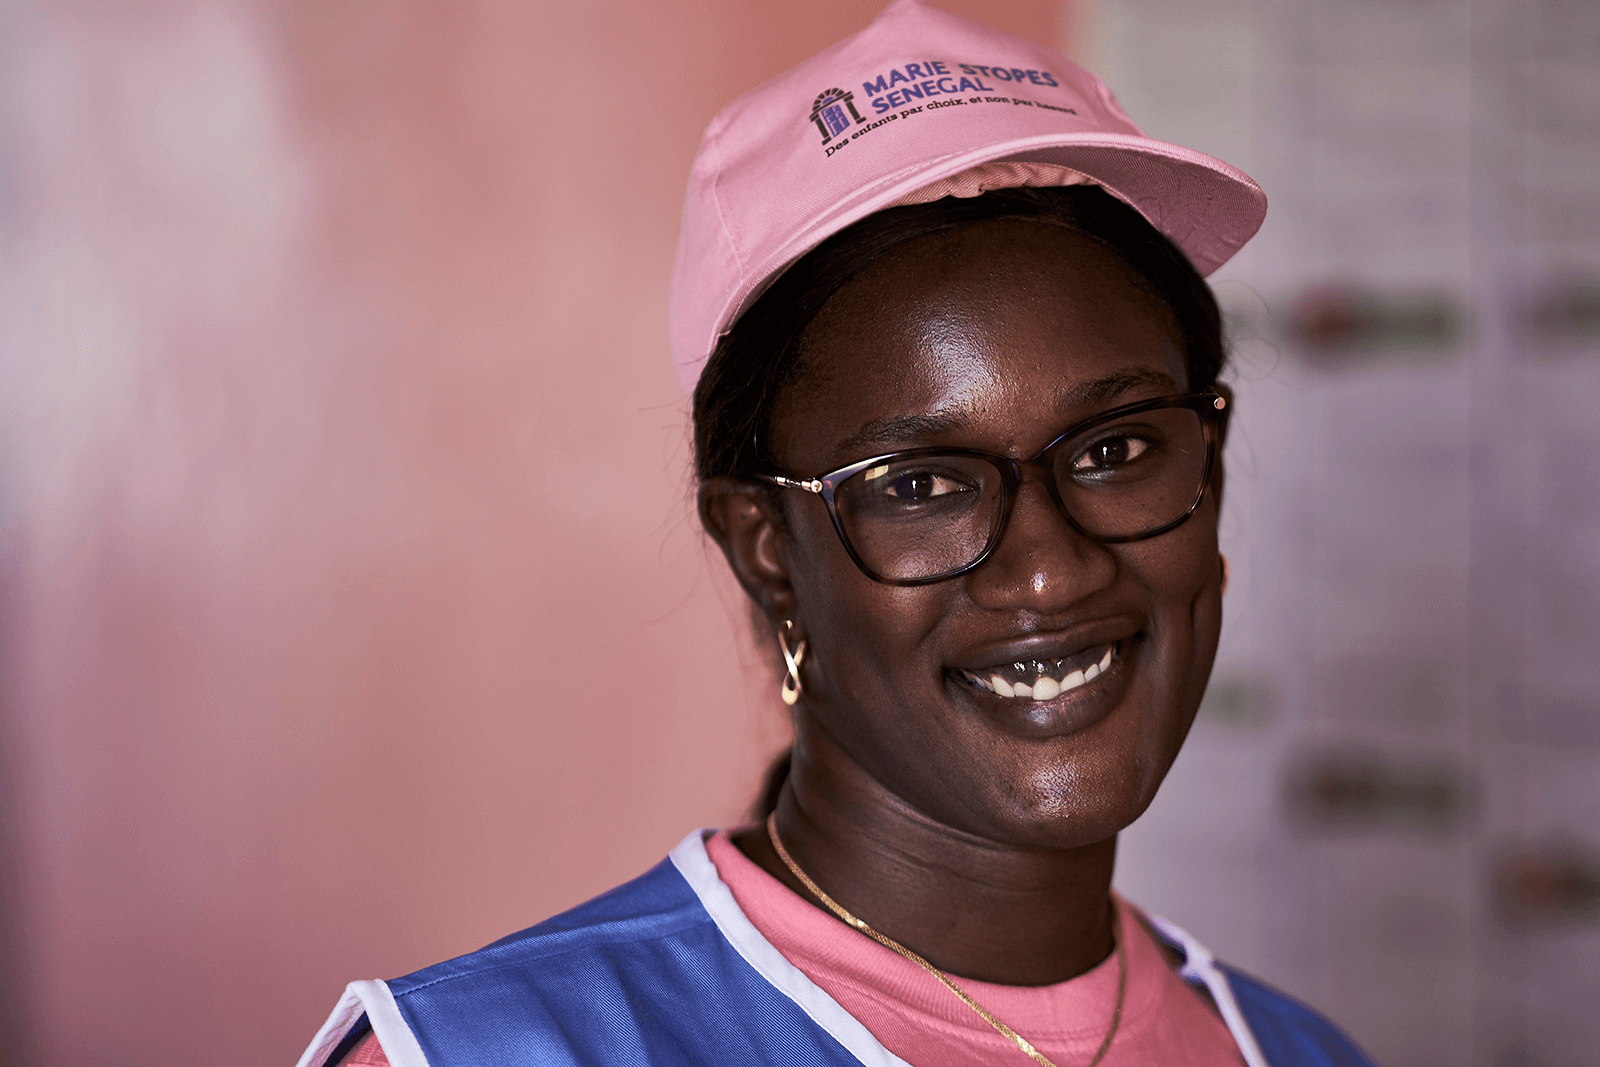 Doubling contraceptive use in Senegal